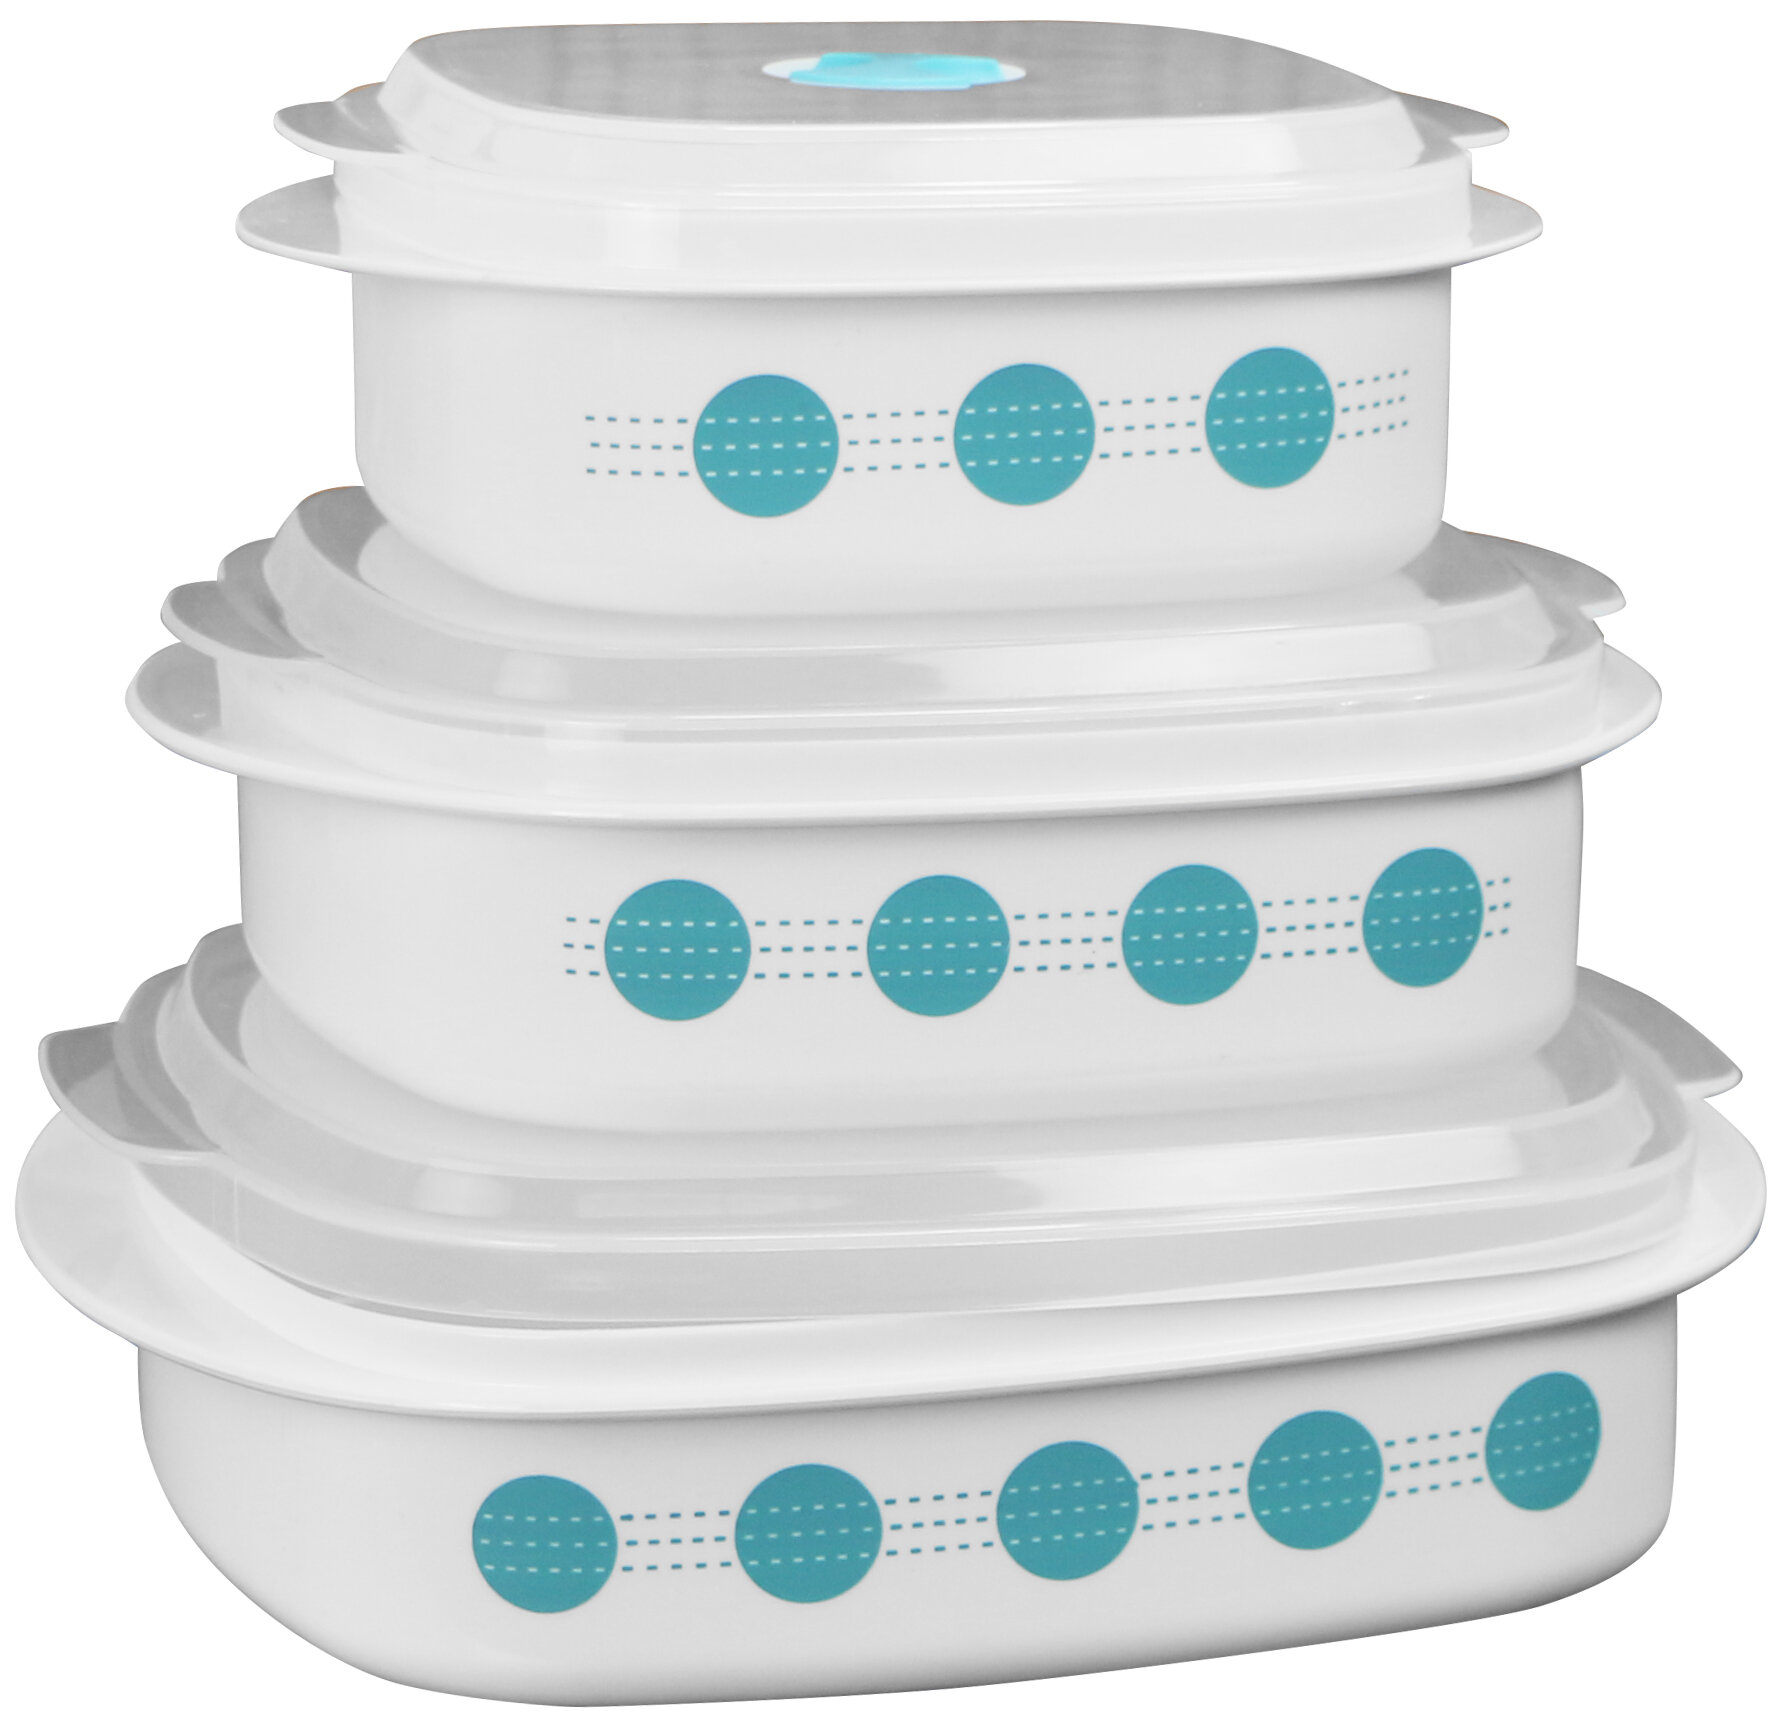 Corelle South Beach Microwave Cookware 3 Container Food Storage Set Reviews Wayfair